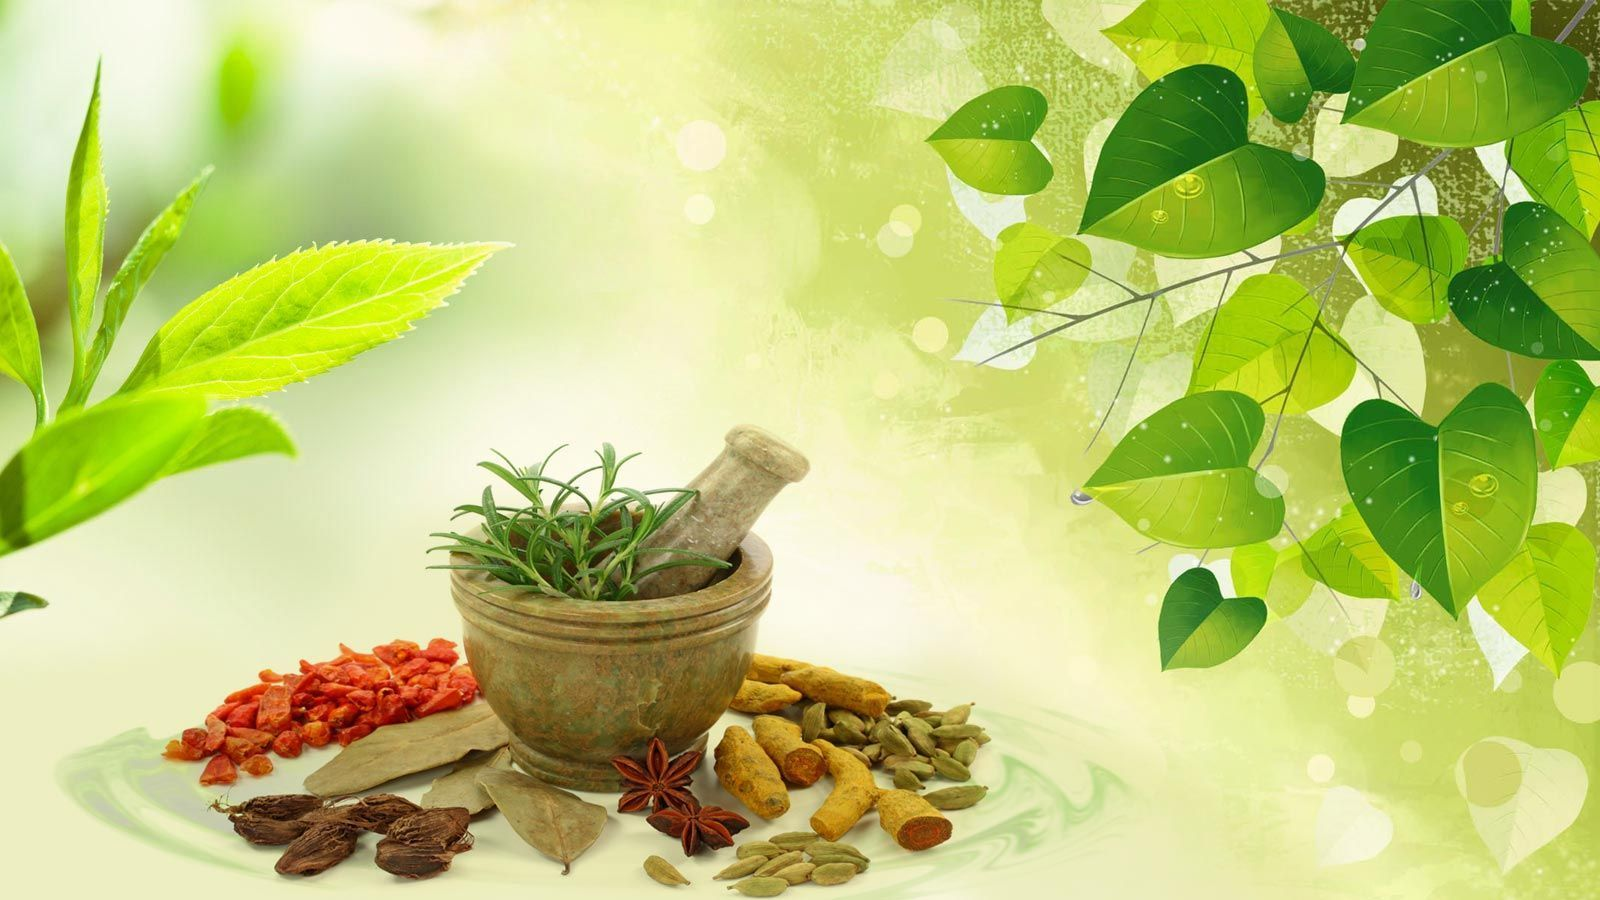 Ayurveda Wallpapers Wallpaper Cave